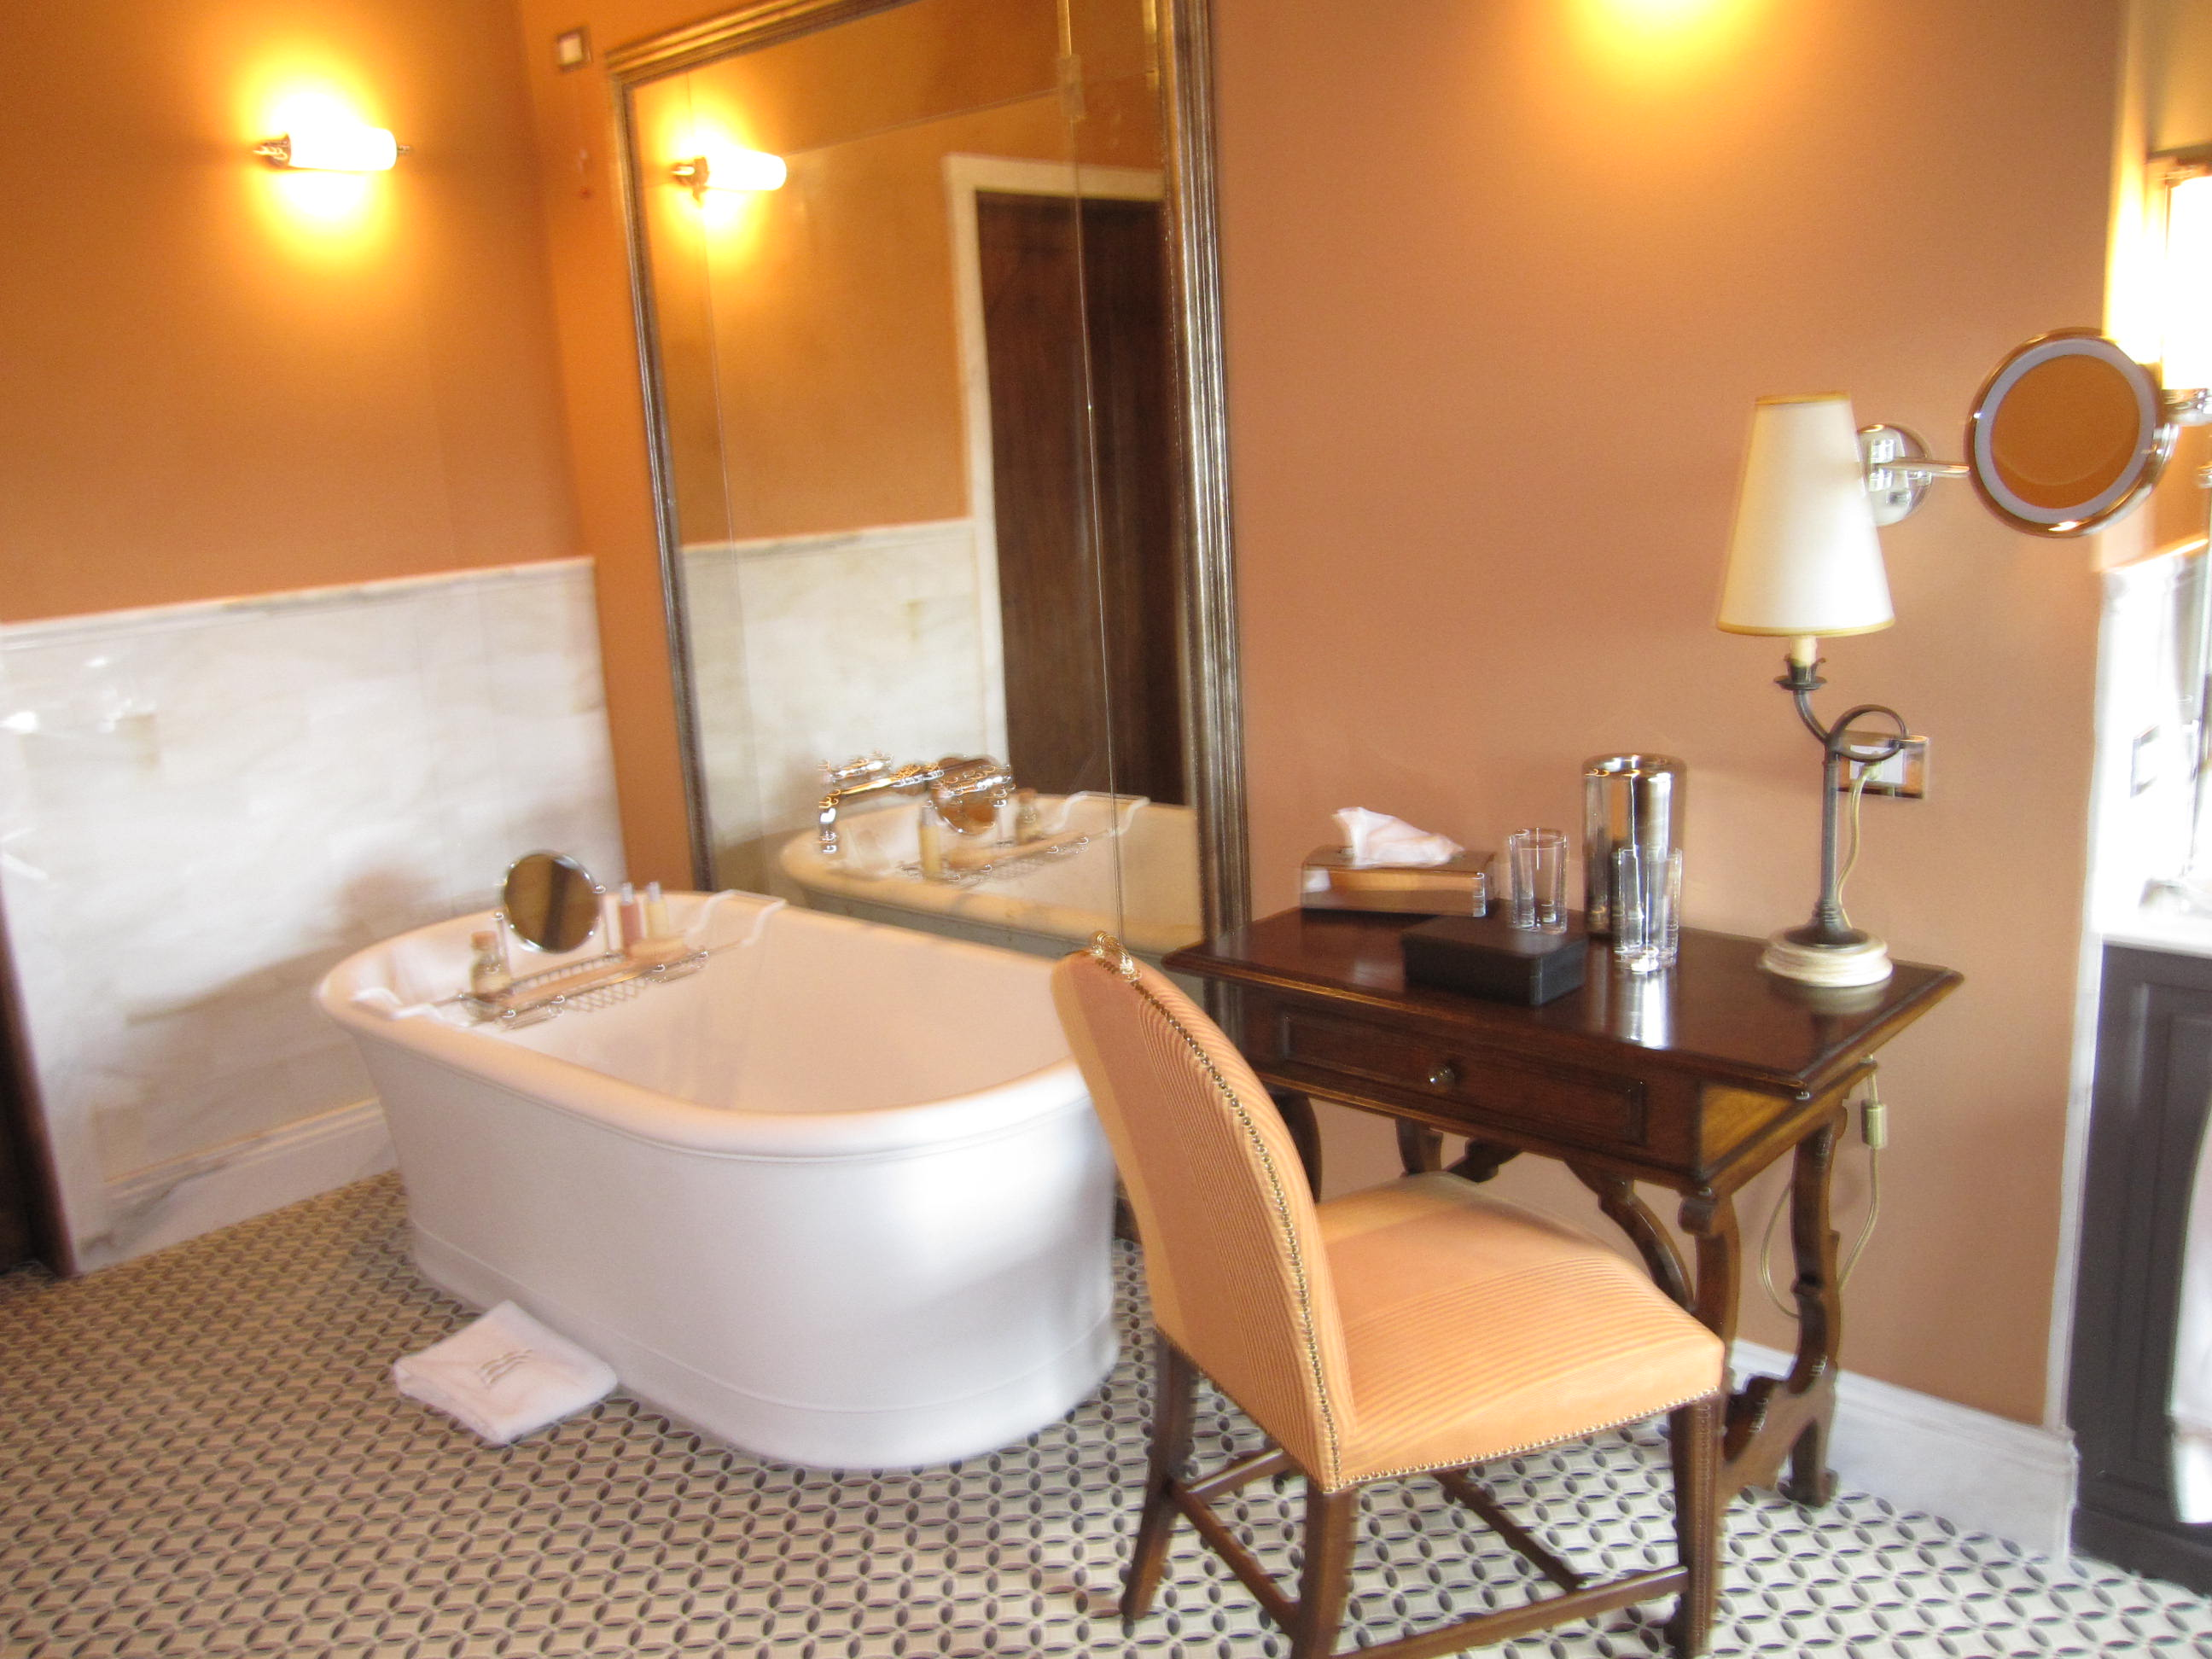 11-bath-tub-and-chair.jpg #11